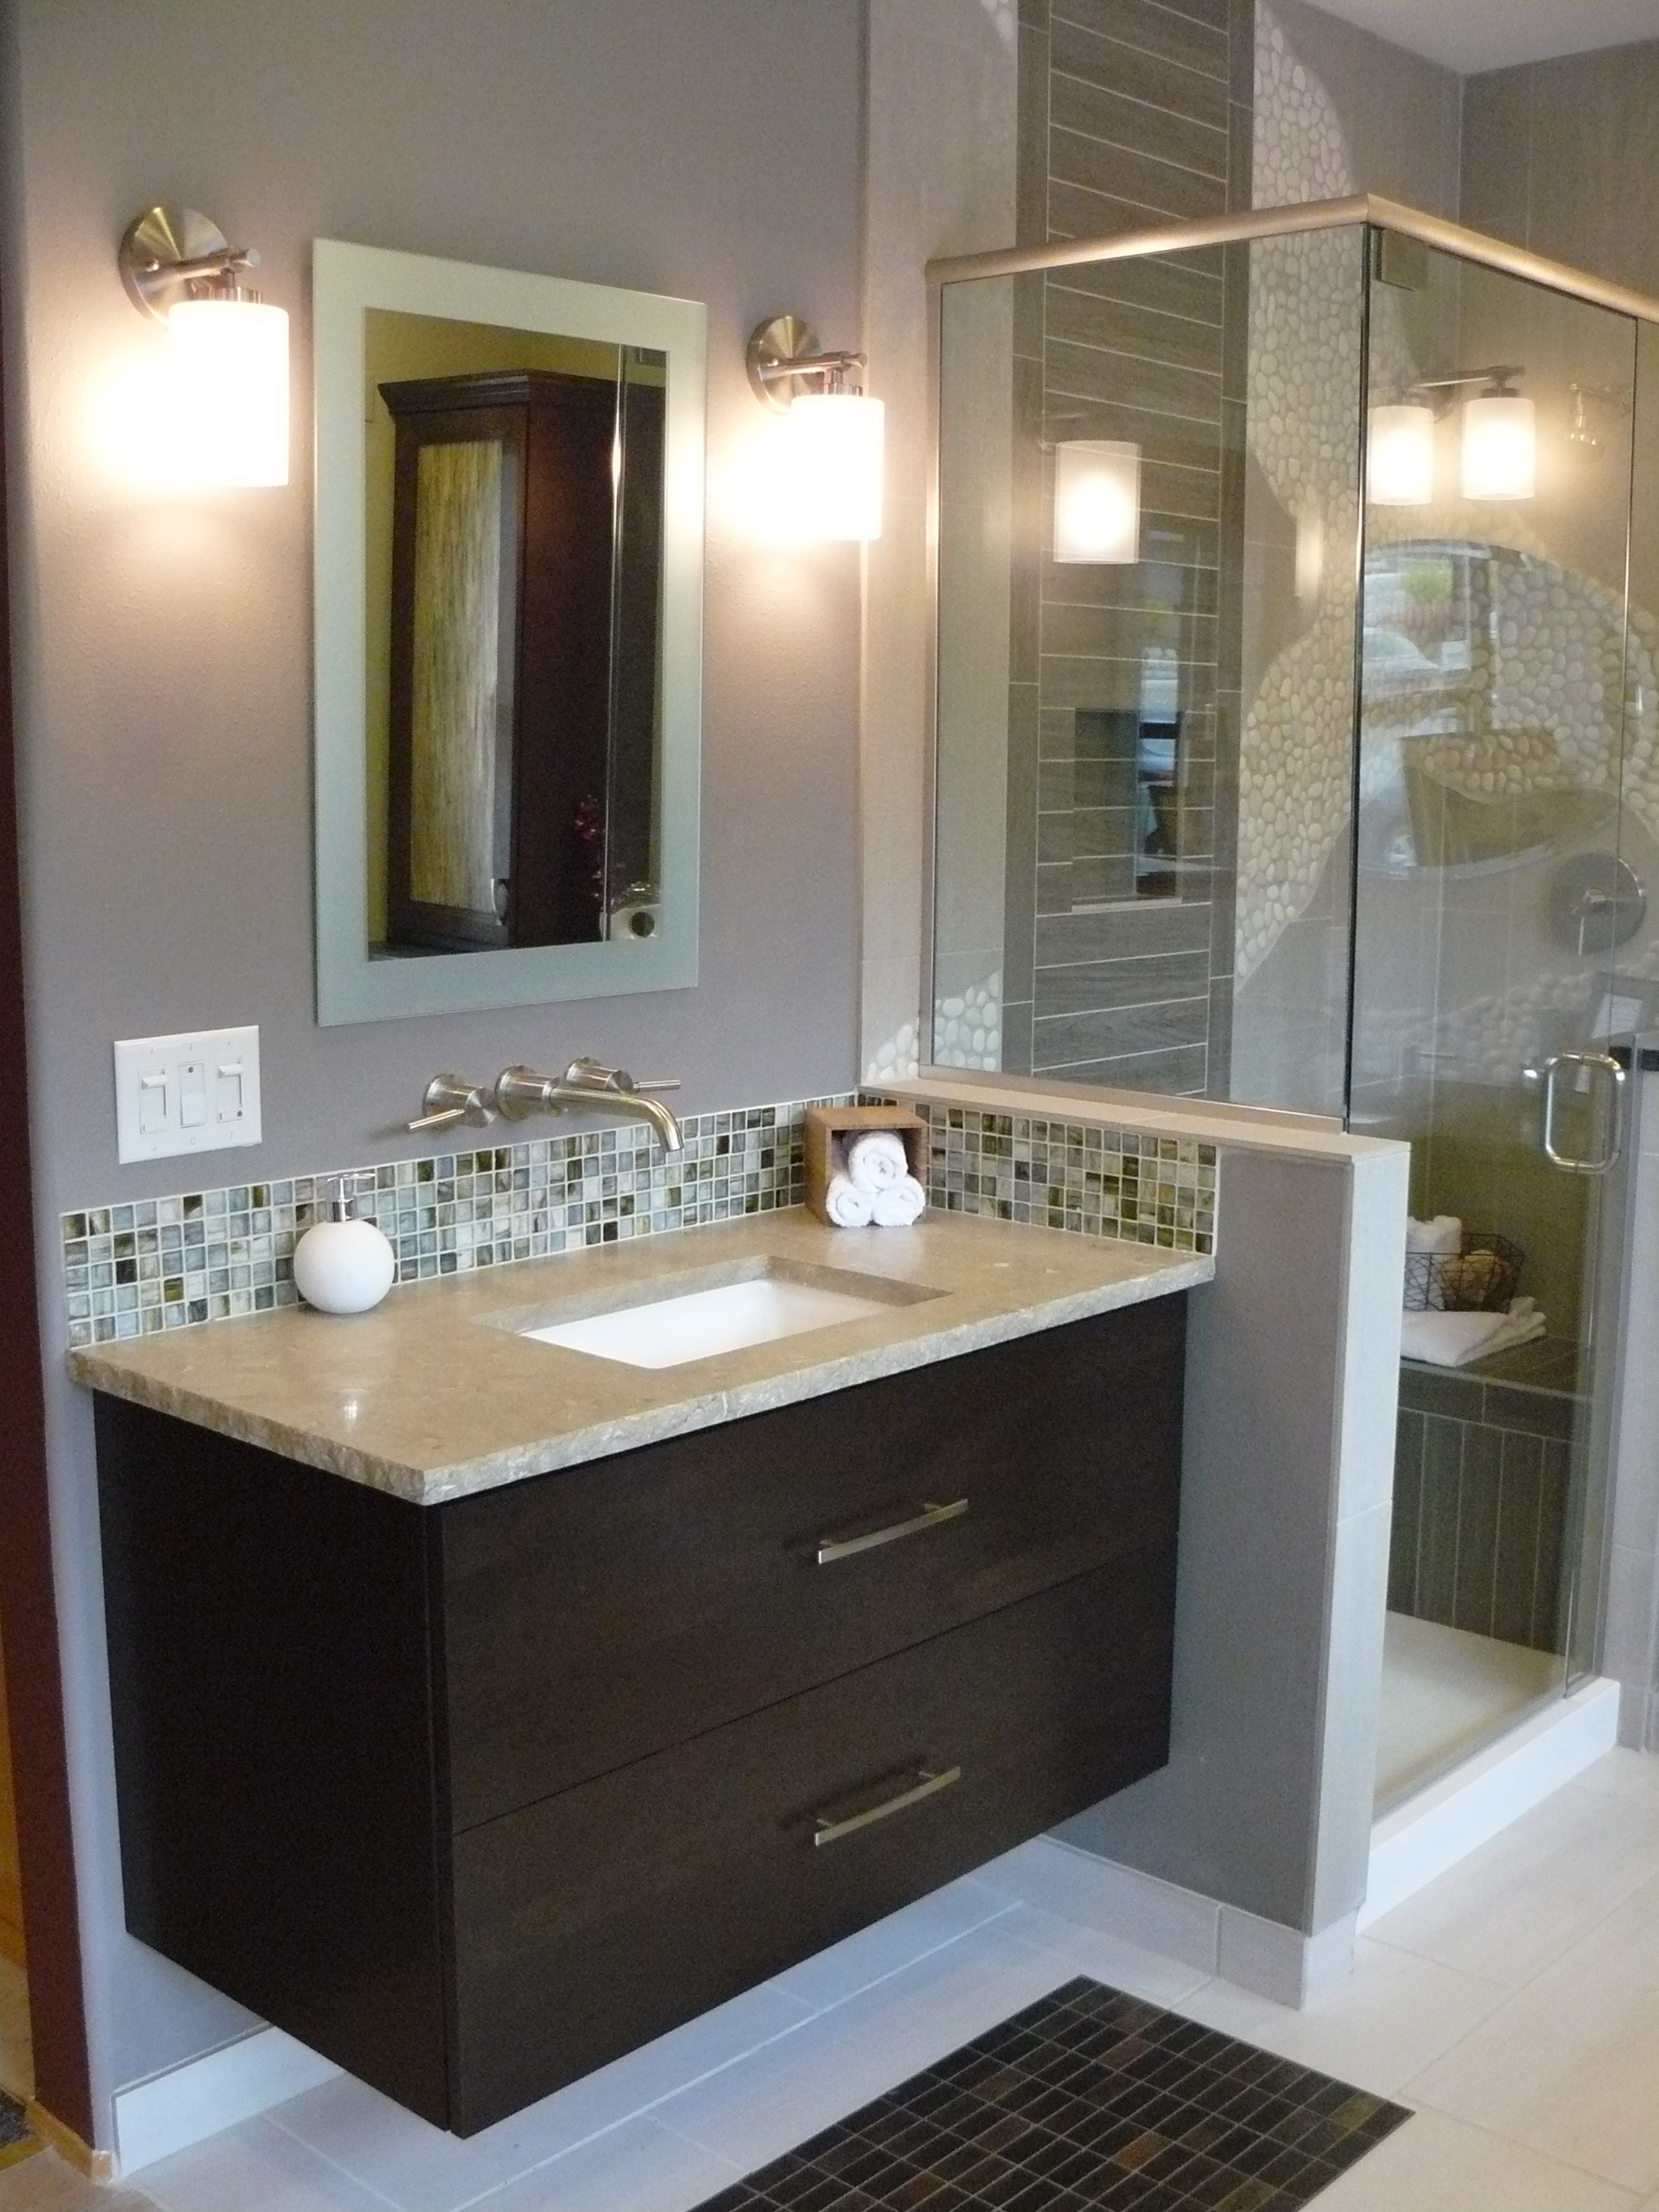 Vanity hall bathroom furniture decoration designs guide for Bathroom furniture ideas